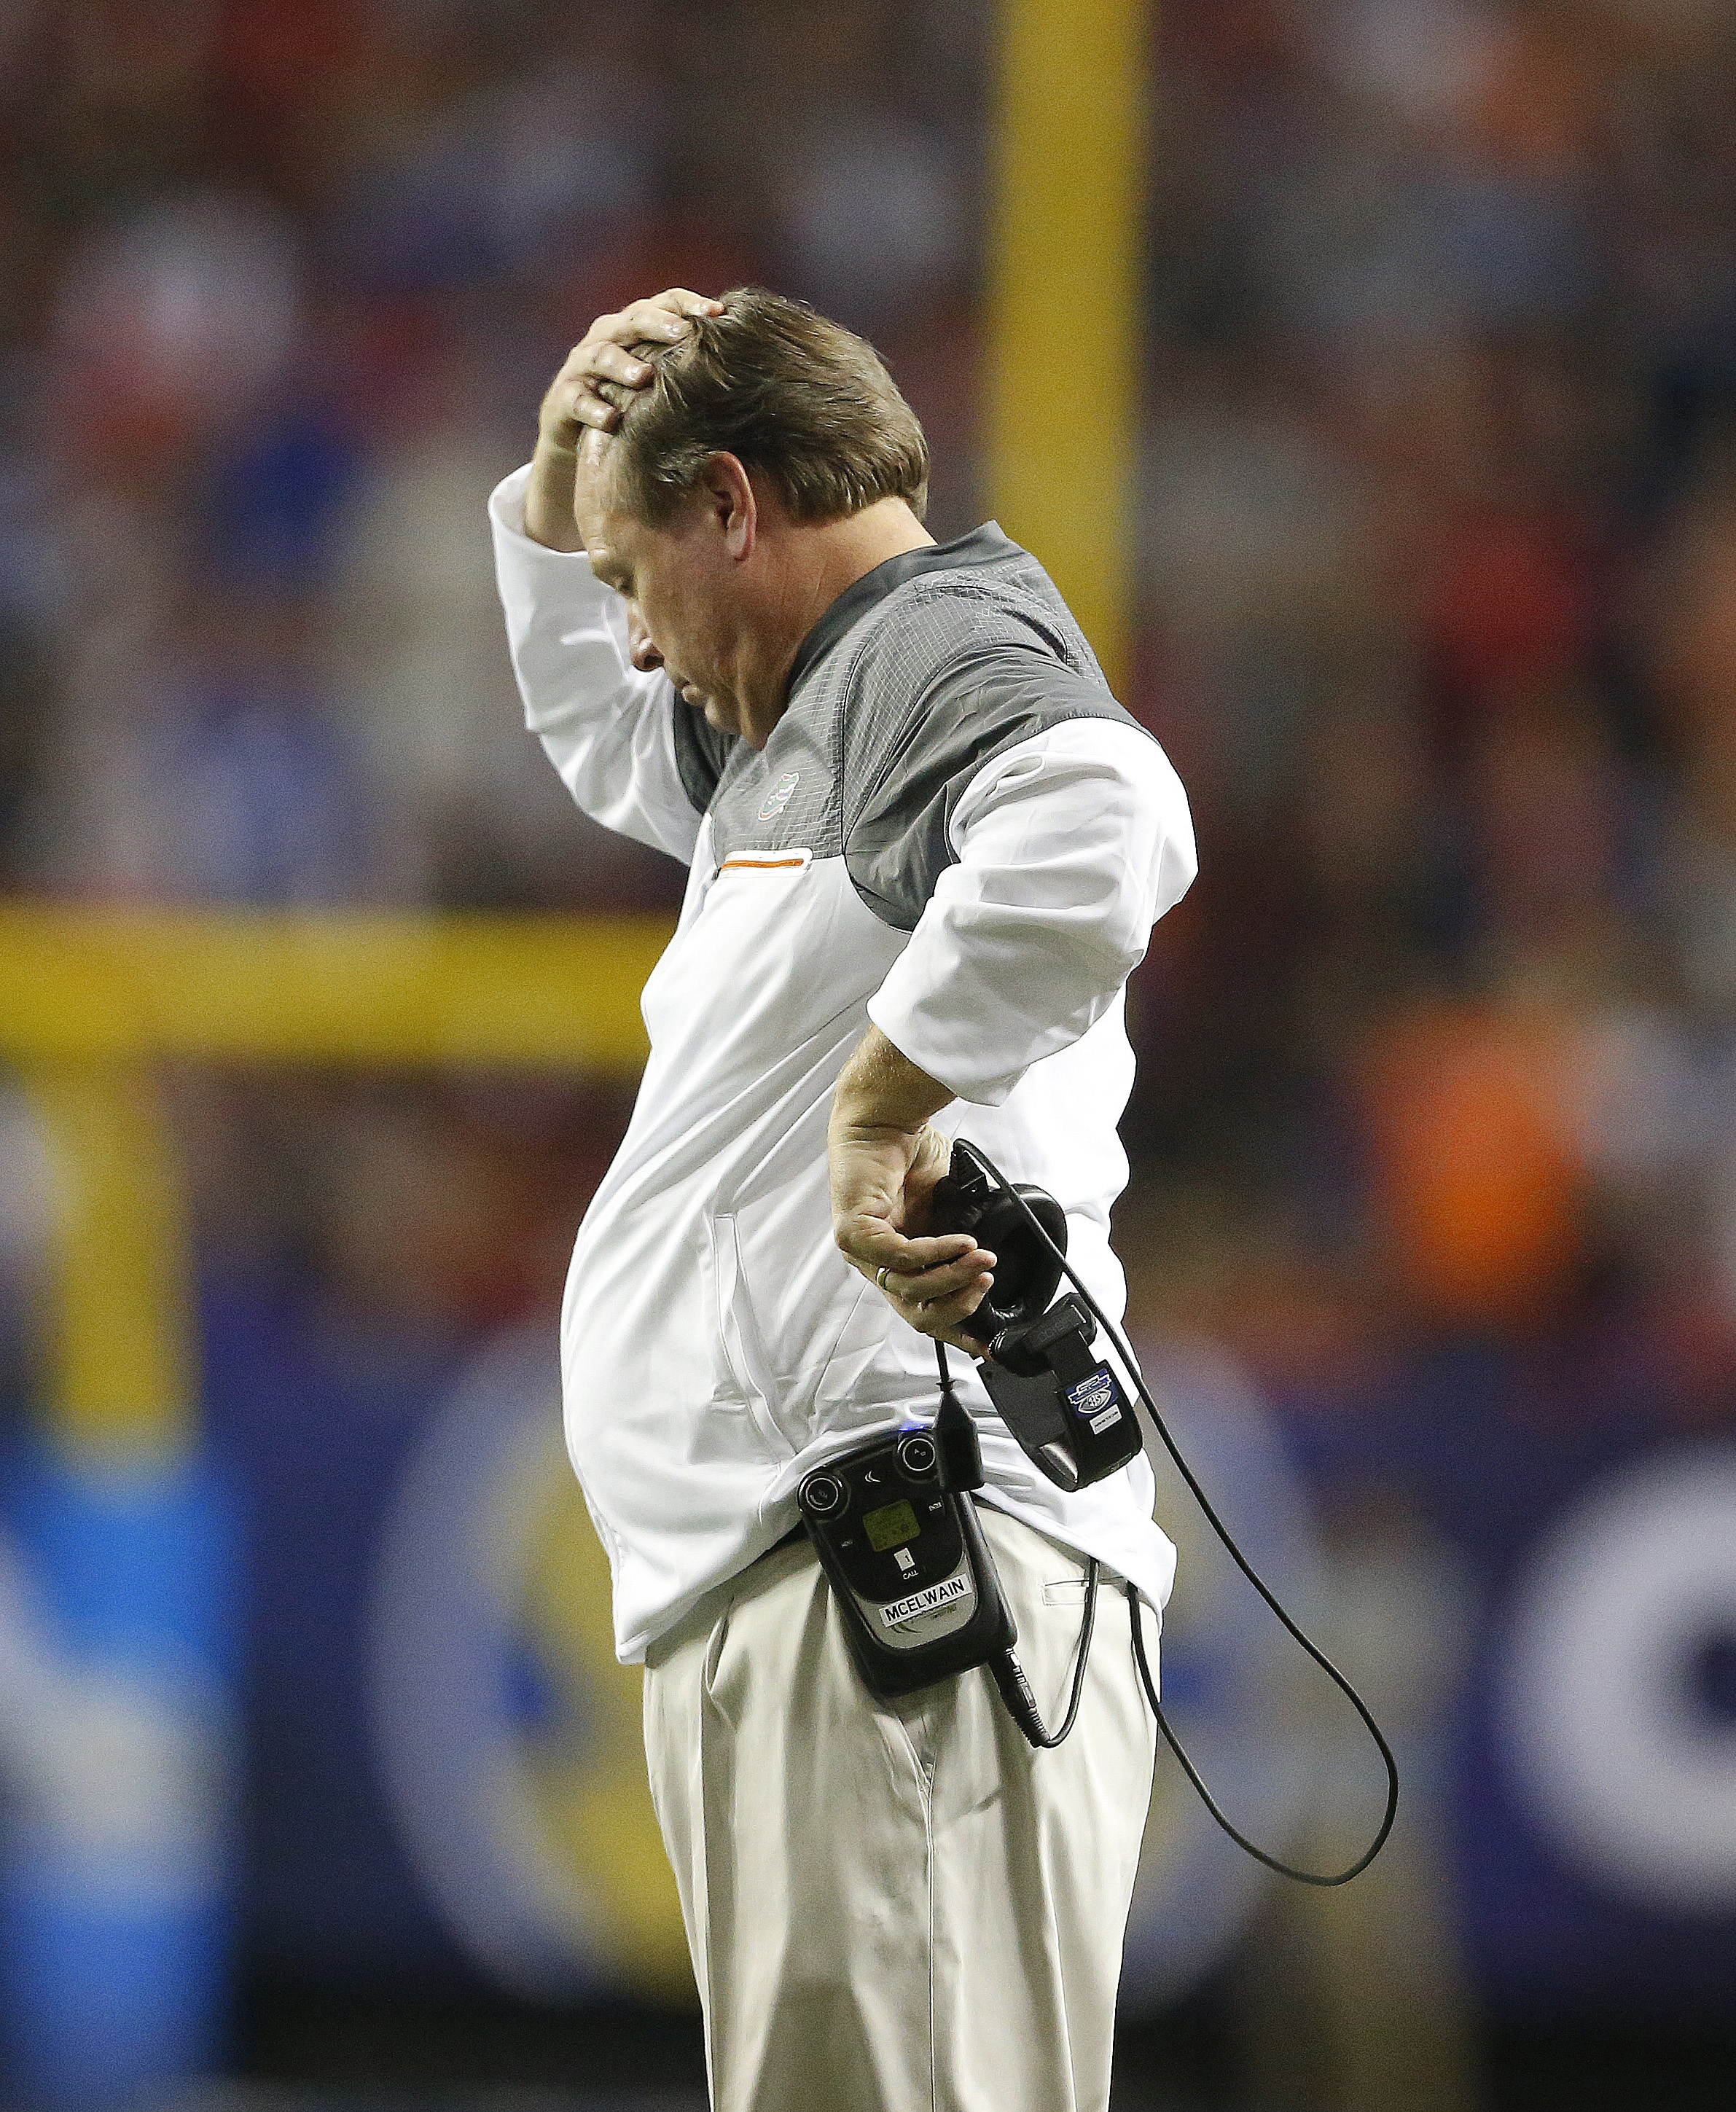 Florida head coach Jim McElwain reacts to play against Alabama during the second half of the Southeastern Conference championship NCAA college football game, Saturday, Dec. 3, 2016, in Atlanta. Alabama won 54-16. (AP Photo/Butch Dill)